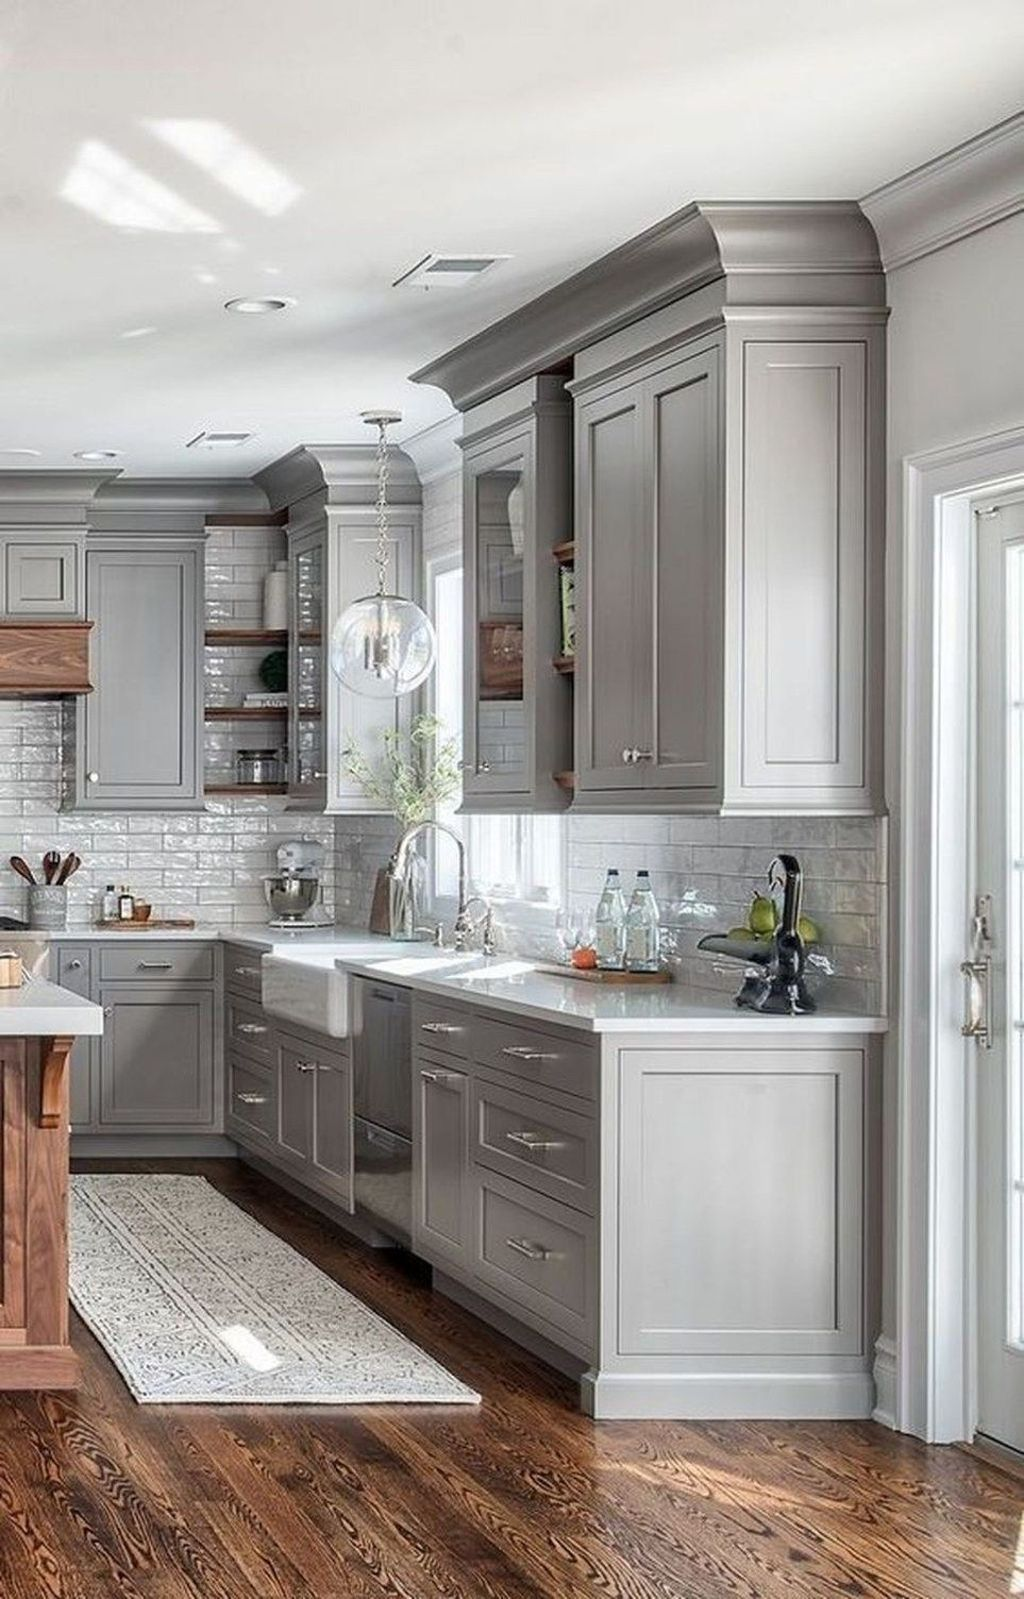 51 Unique Kitchen Cabinet Ideas To Get You Started Kitchen